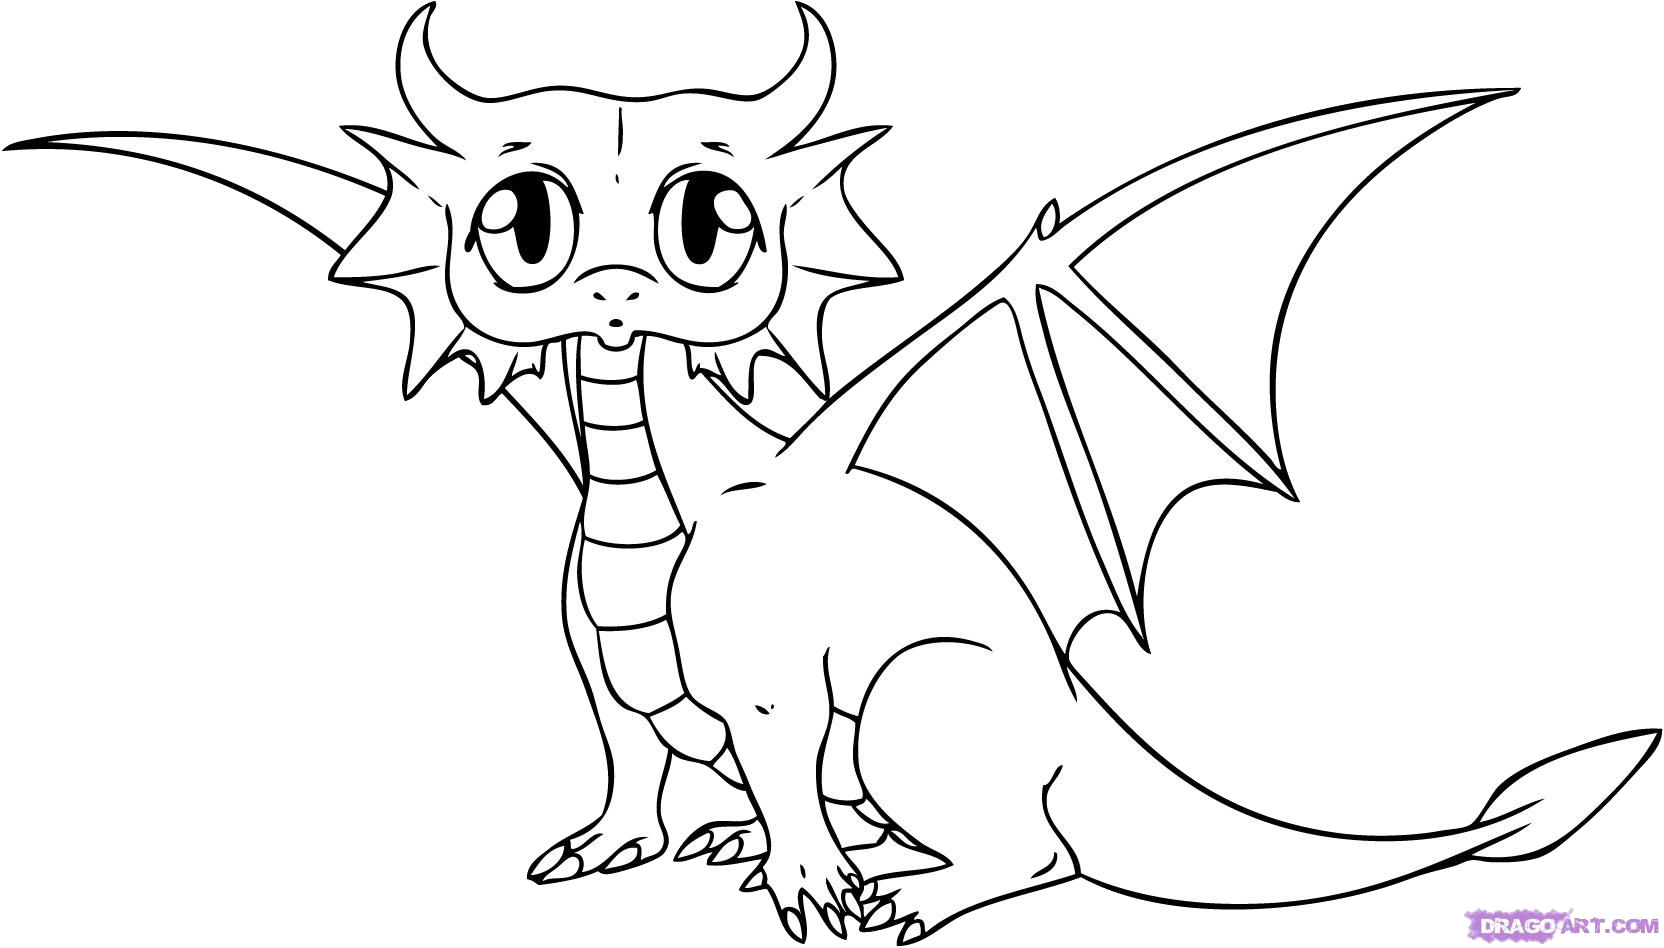 Easy Dragon Coloring Pages At Getdrawings Com Free For